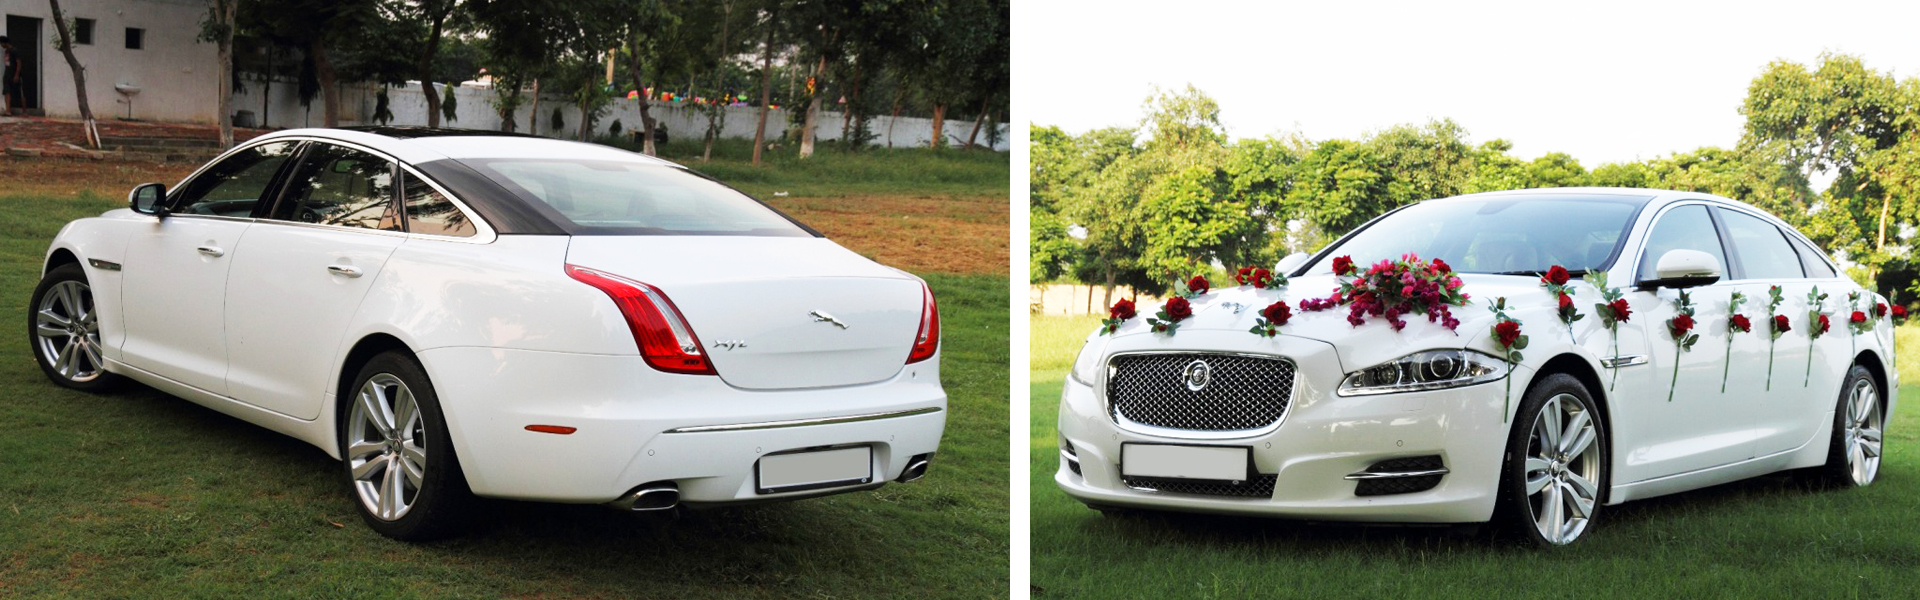 Gallery Punjab Wedding Cars Best Luxury Wedding Cars In Punjab